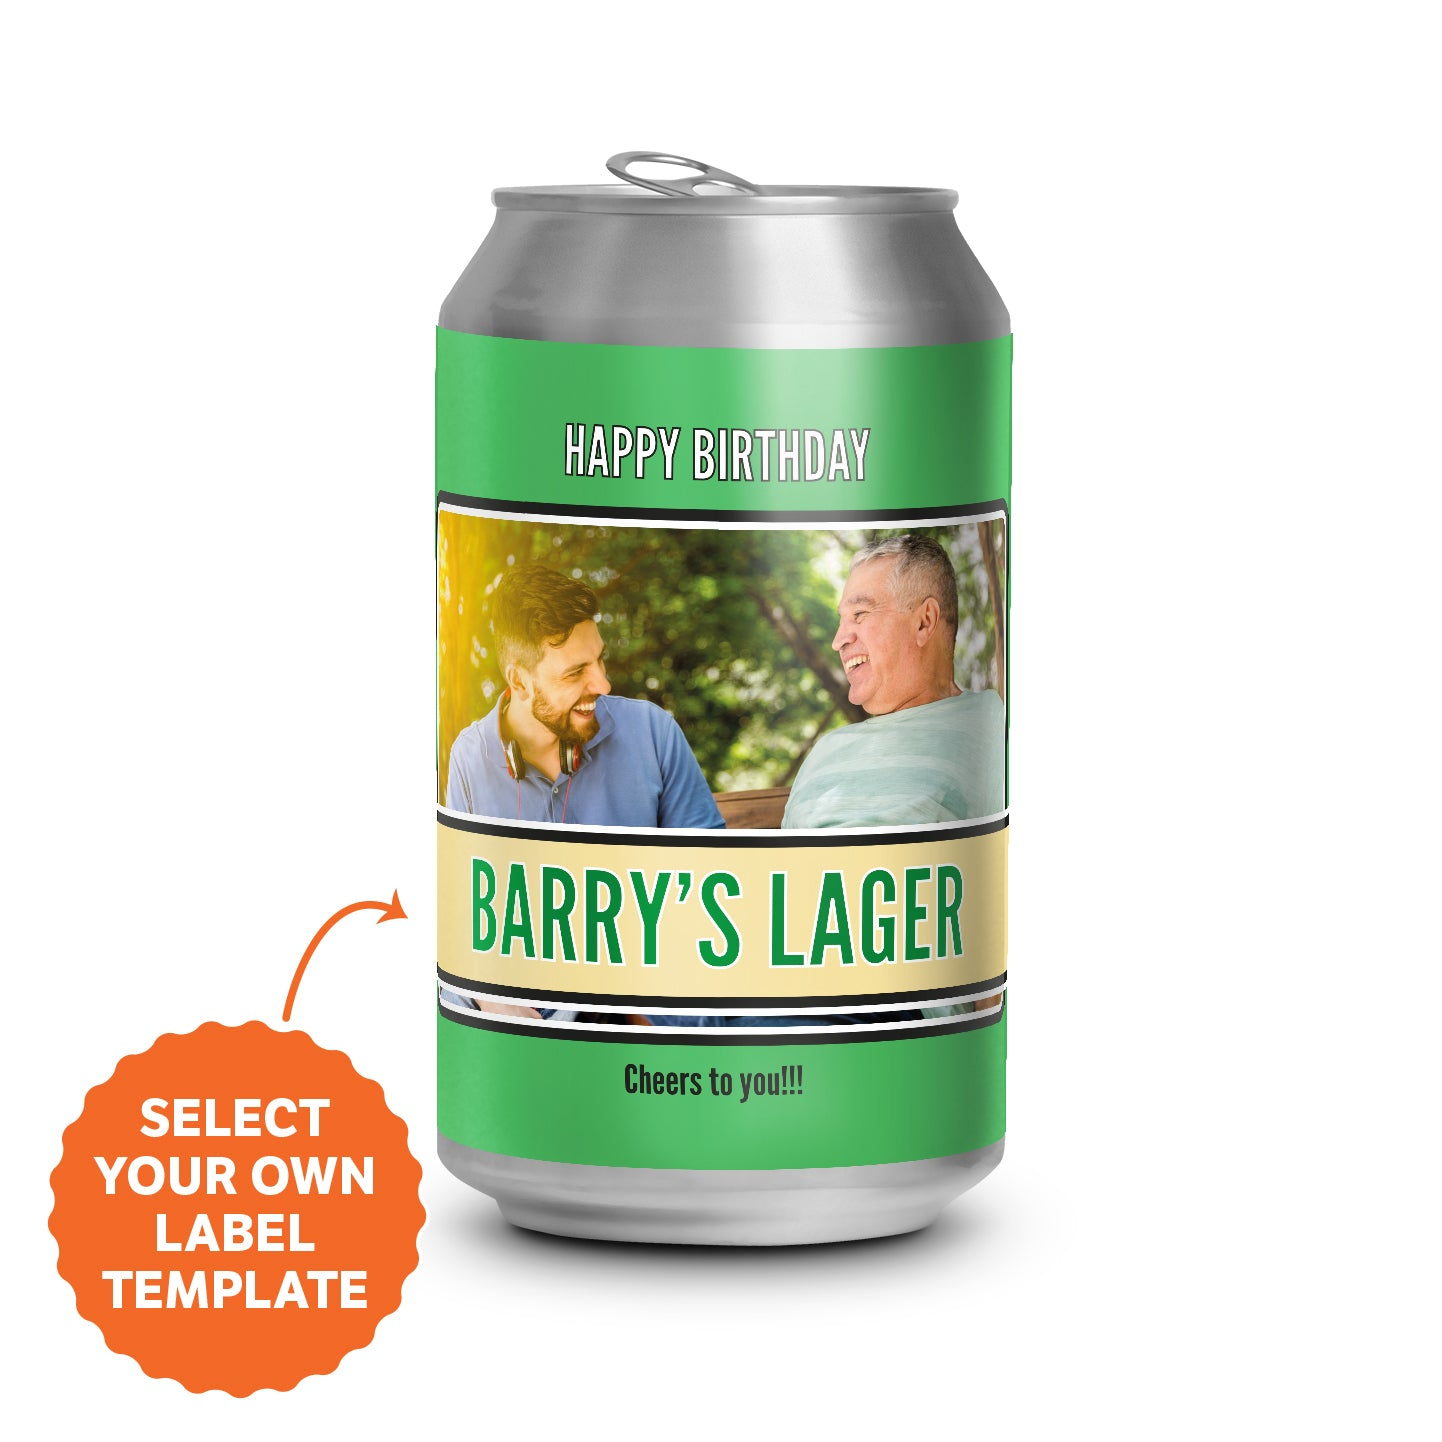 Lager Cans 4.6% - 375ml - Carton of 24